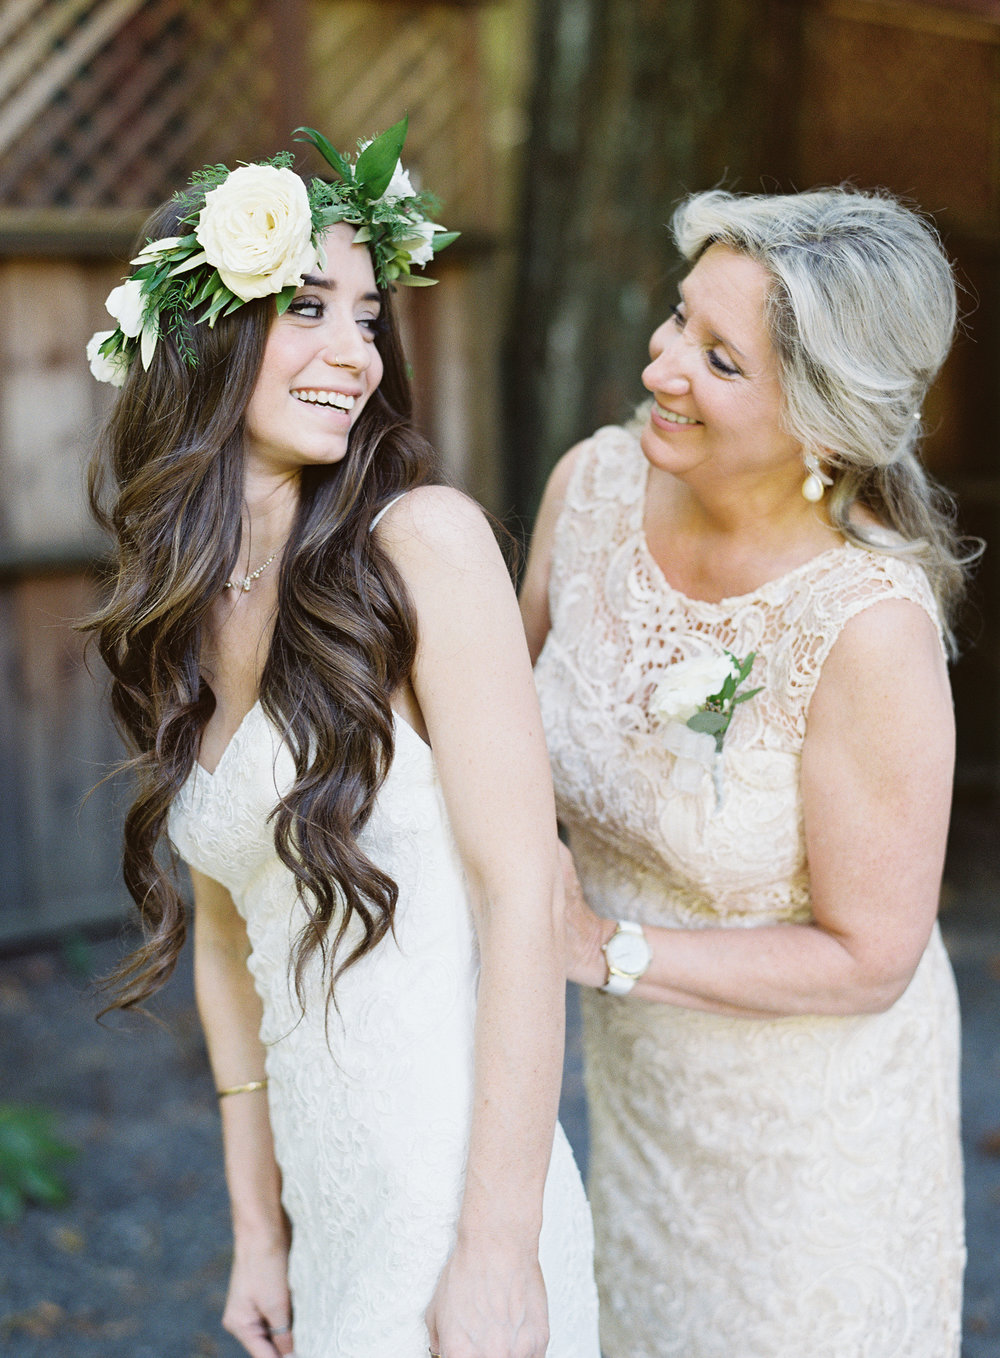 Meghan Mehan Photography | California Wedding Photographer | Napa California Wedding Photographer 058.jpg